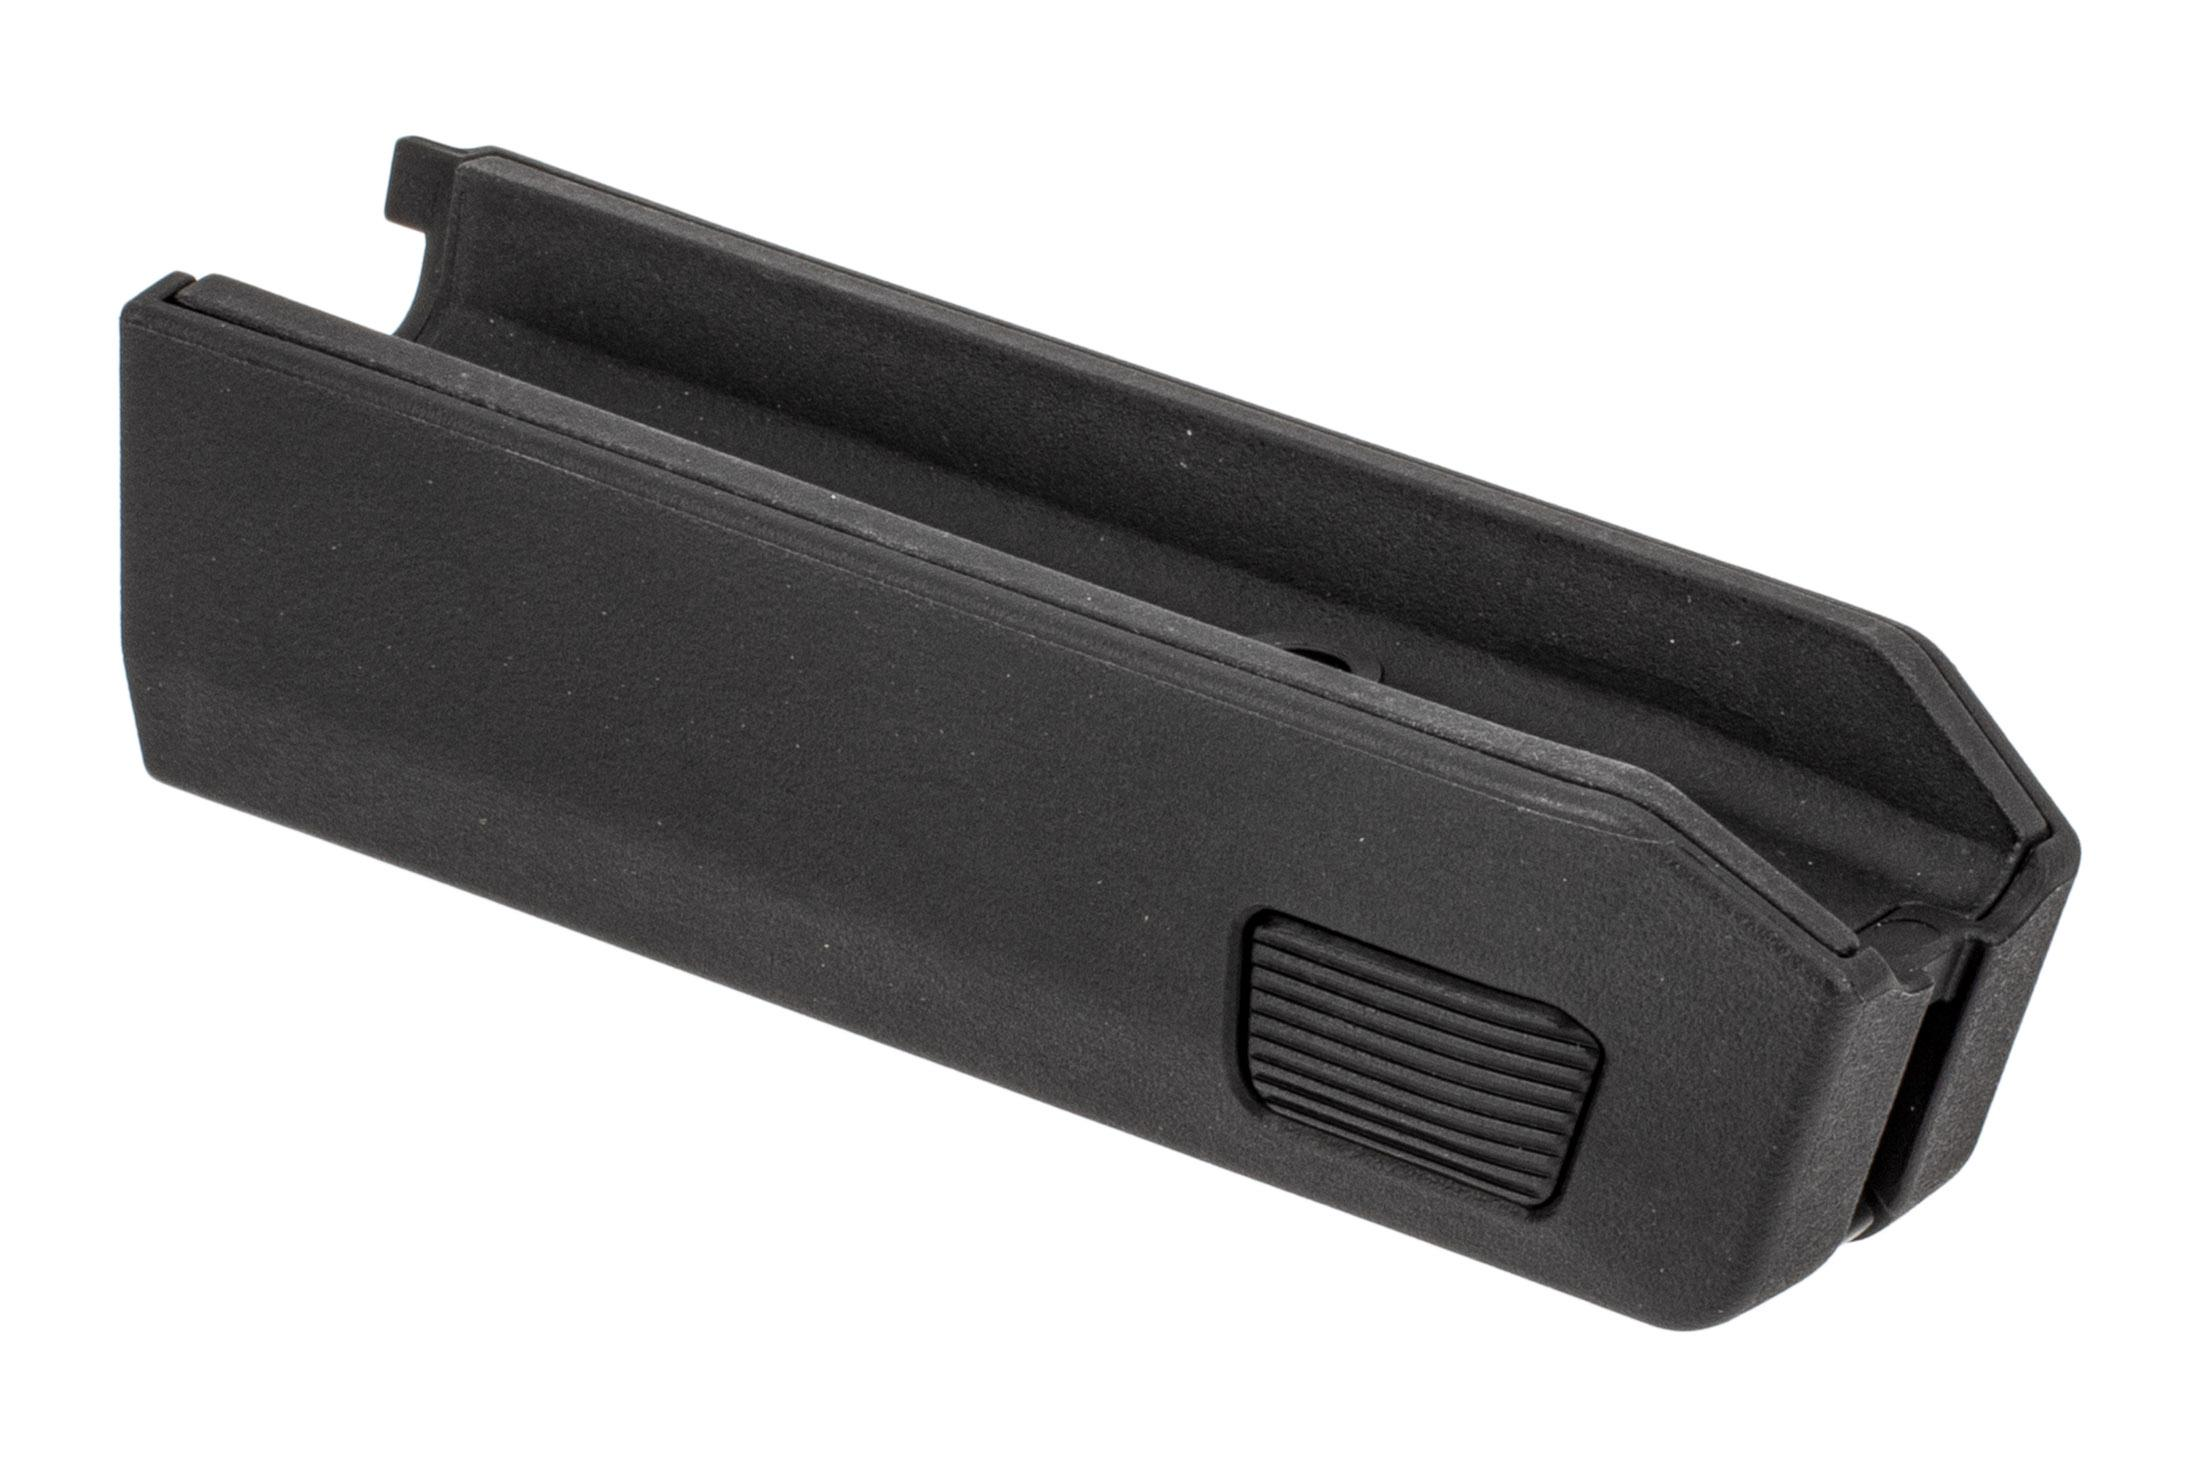 Magpul Backpacker X22 Takedown forend is made from black polymer